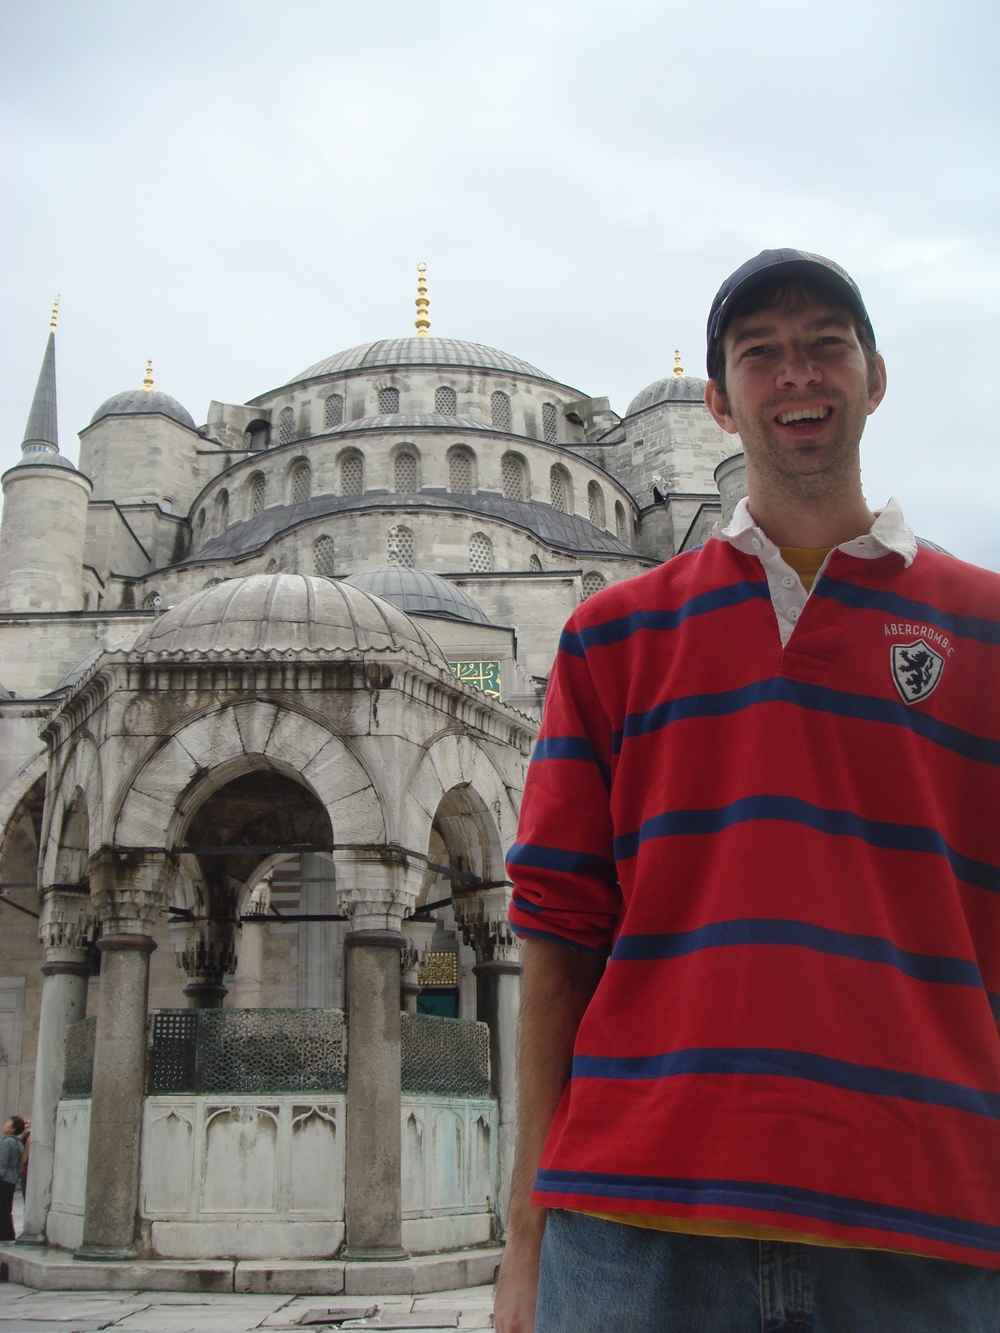 I have been lucky enough to visit Istanbul a couple of times in the past few years. It's awesome.